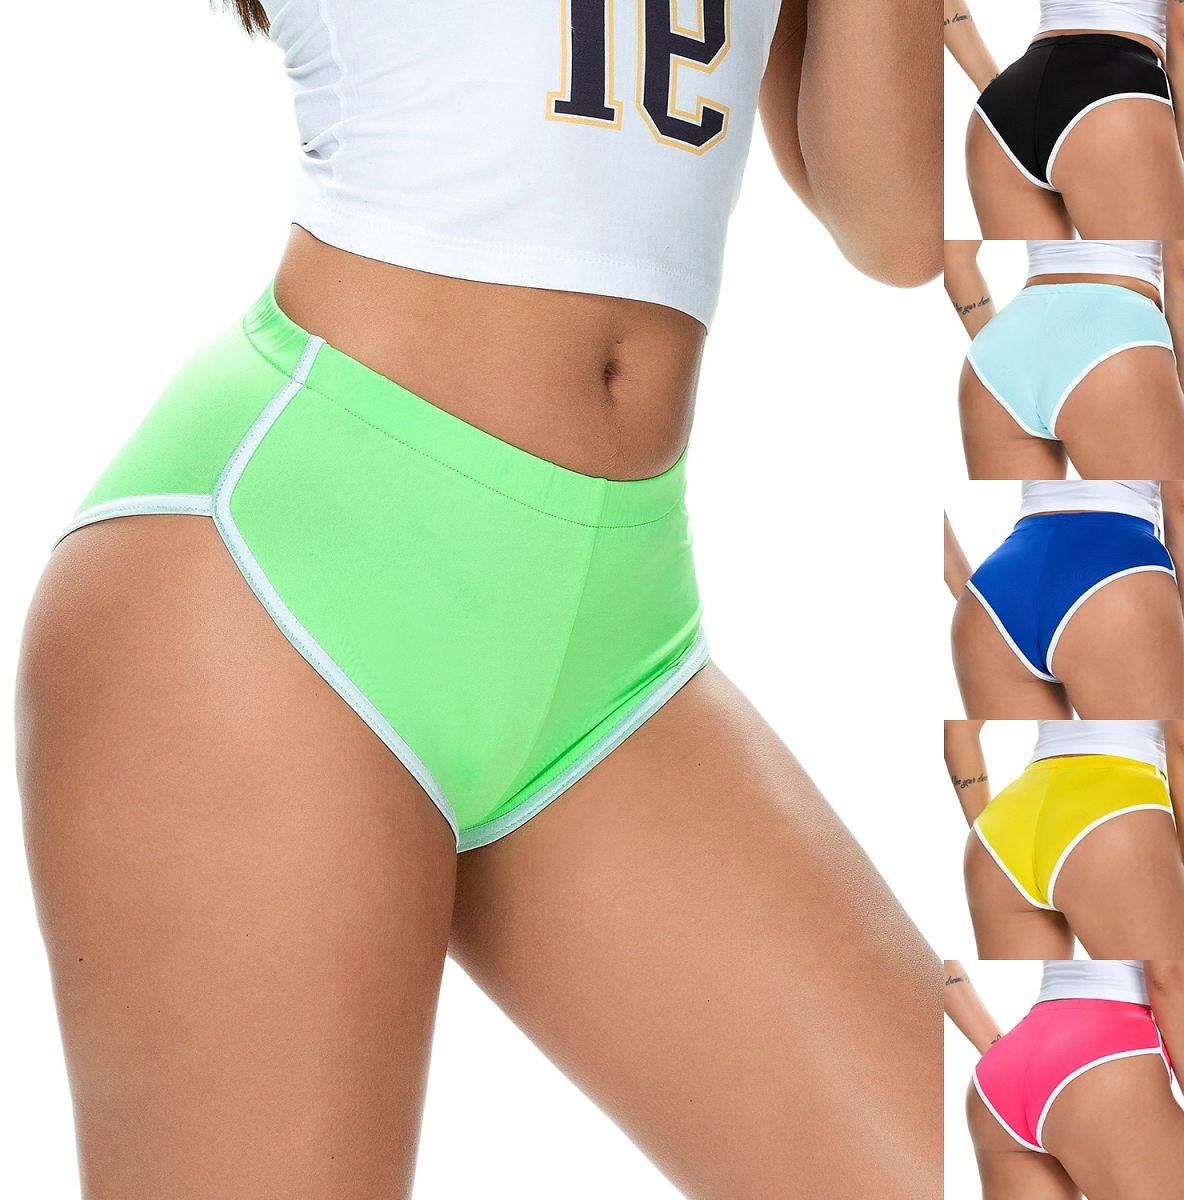 2020 New Summer Ladies Shorts Hot Shorts European and American Women's Sexy Running Stretch Sports Shorts